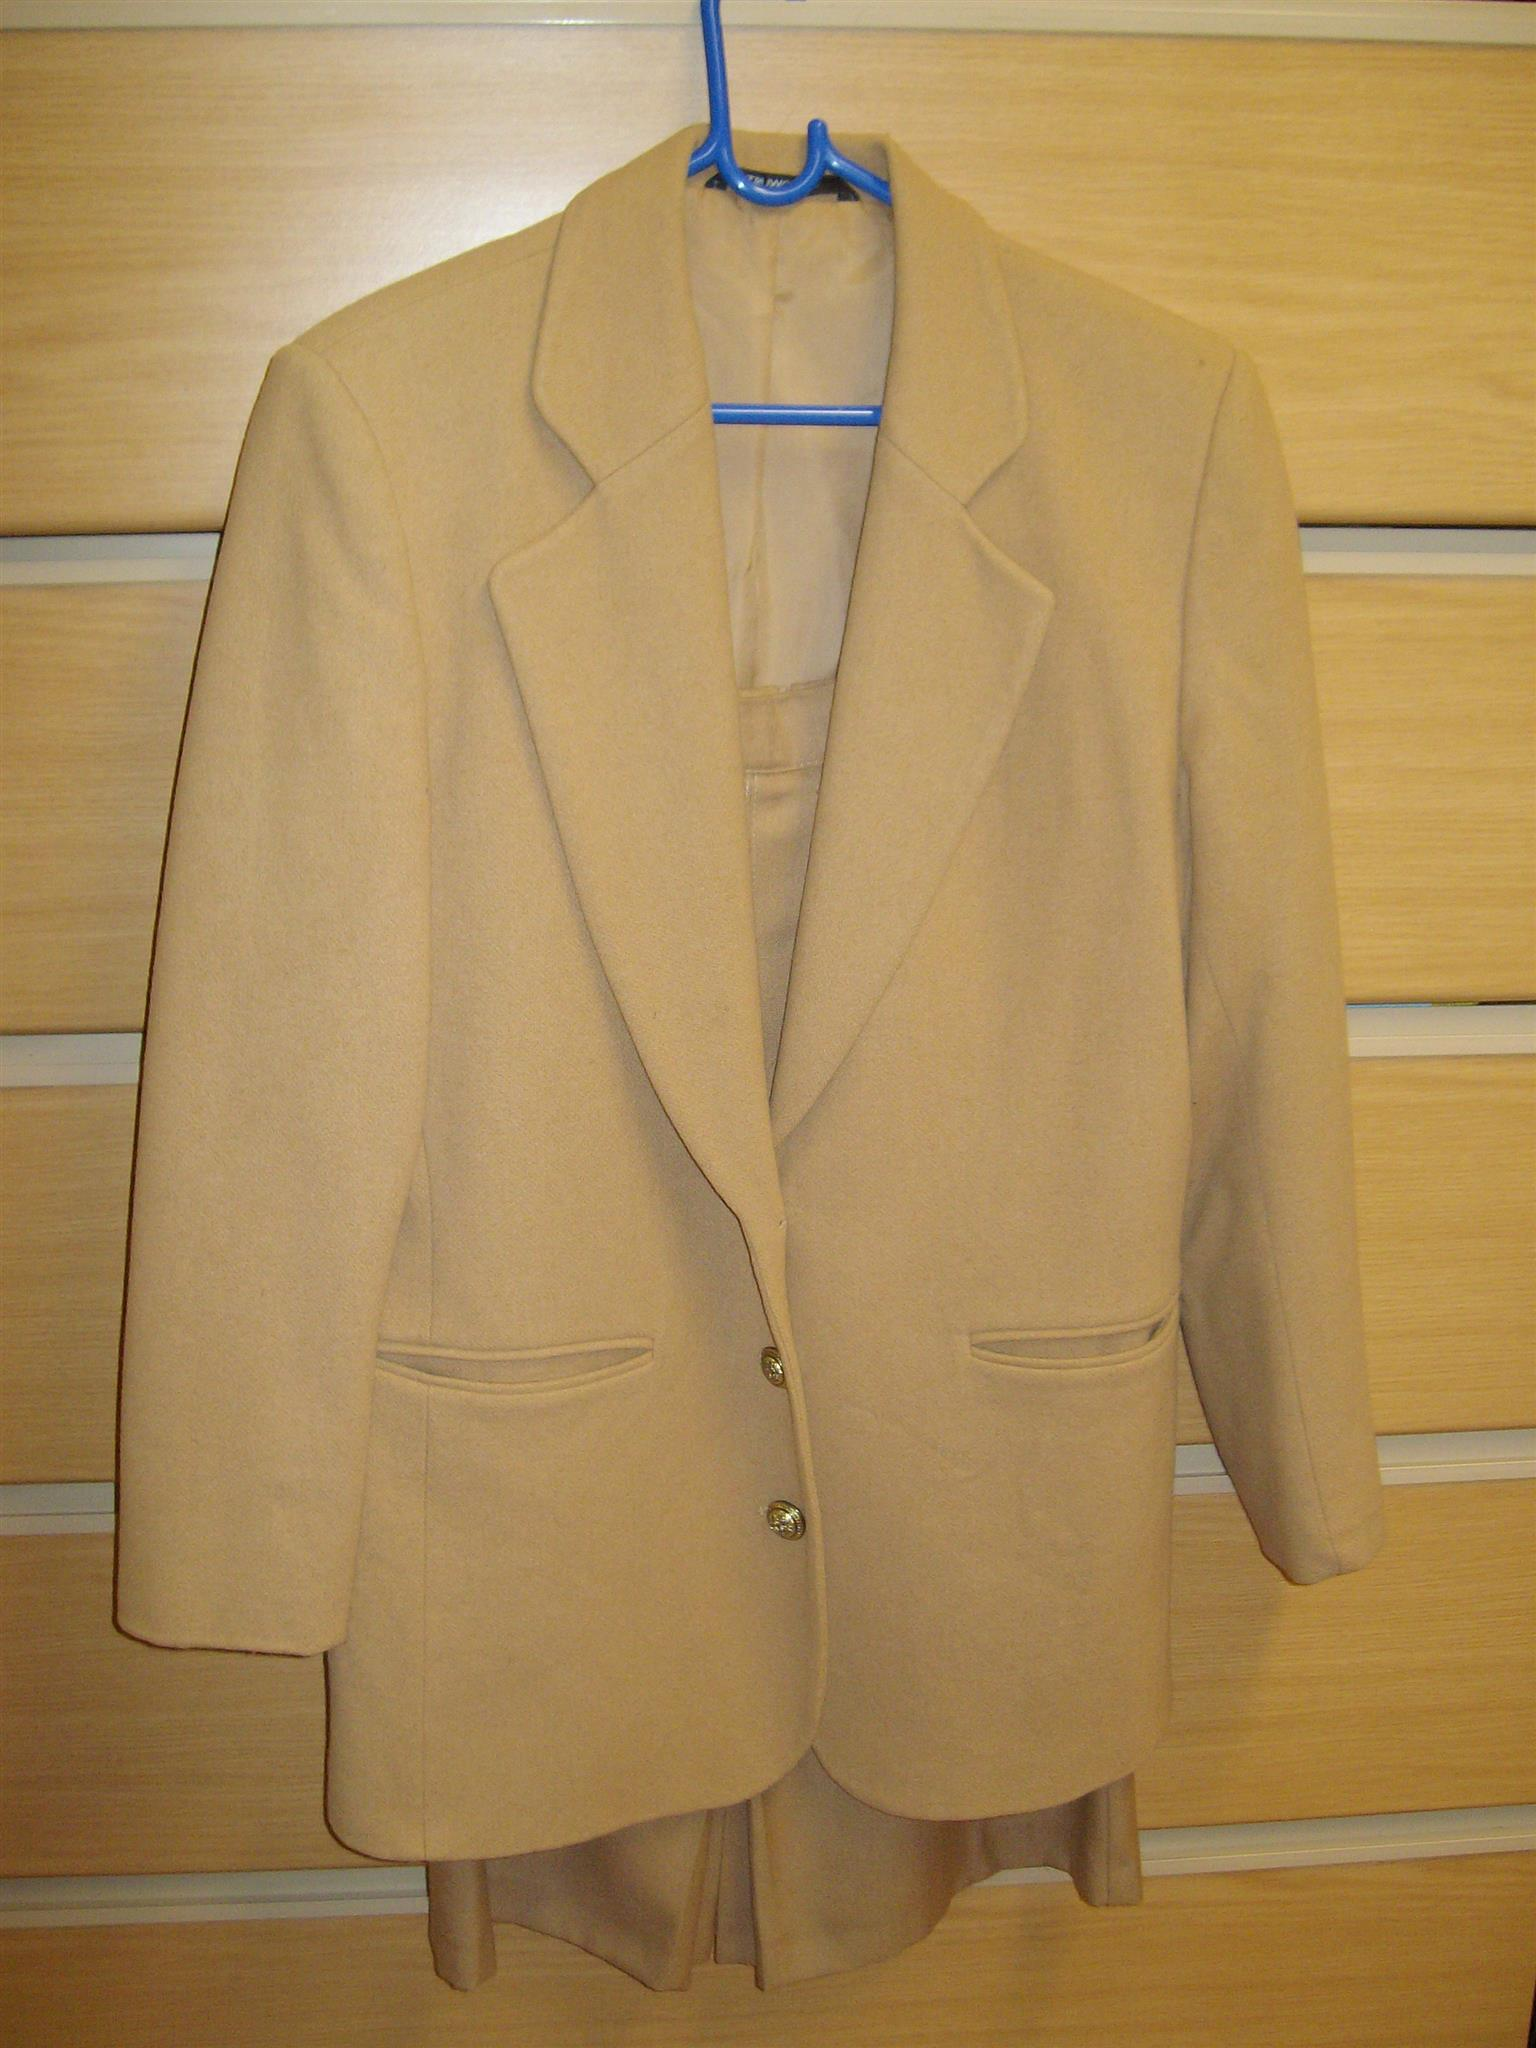 Winter suits (jackets, skirts & trousers)